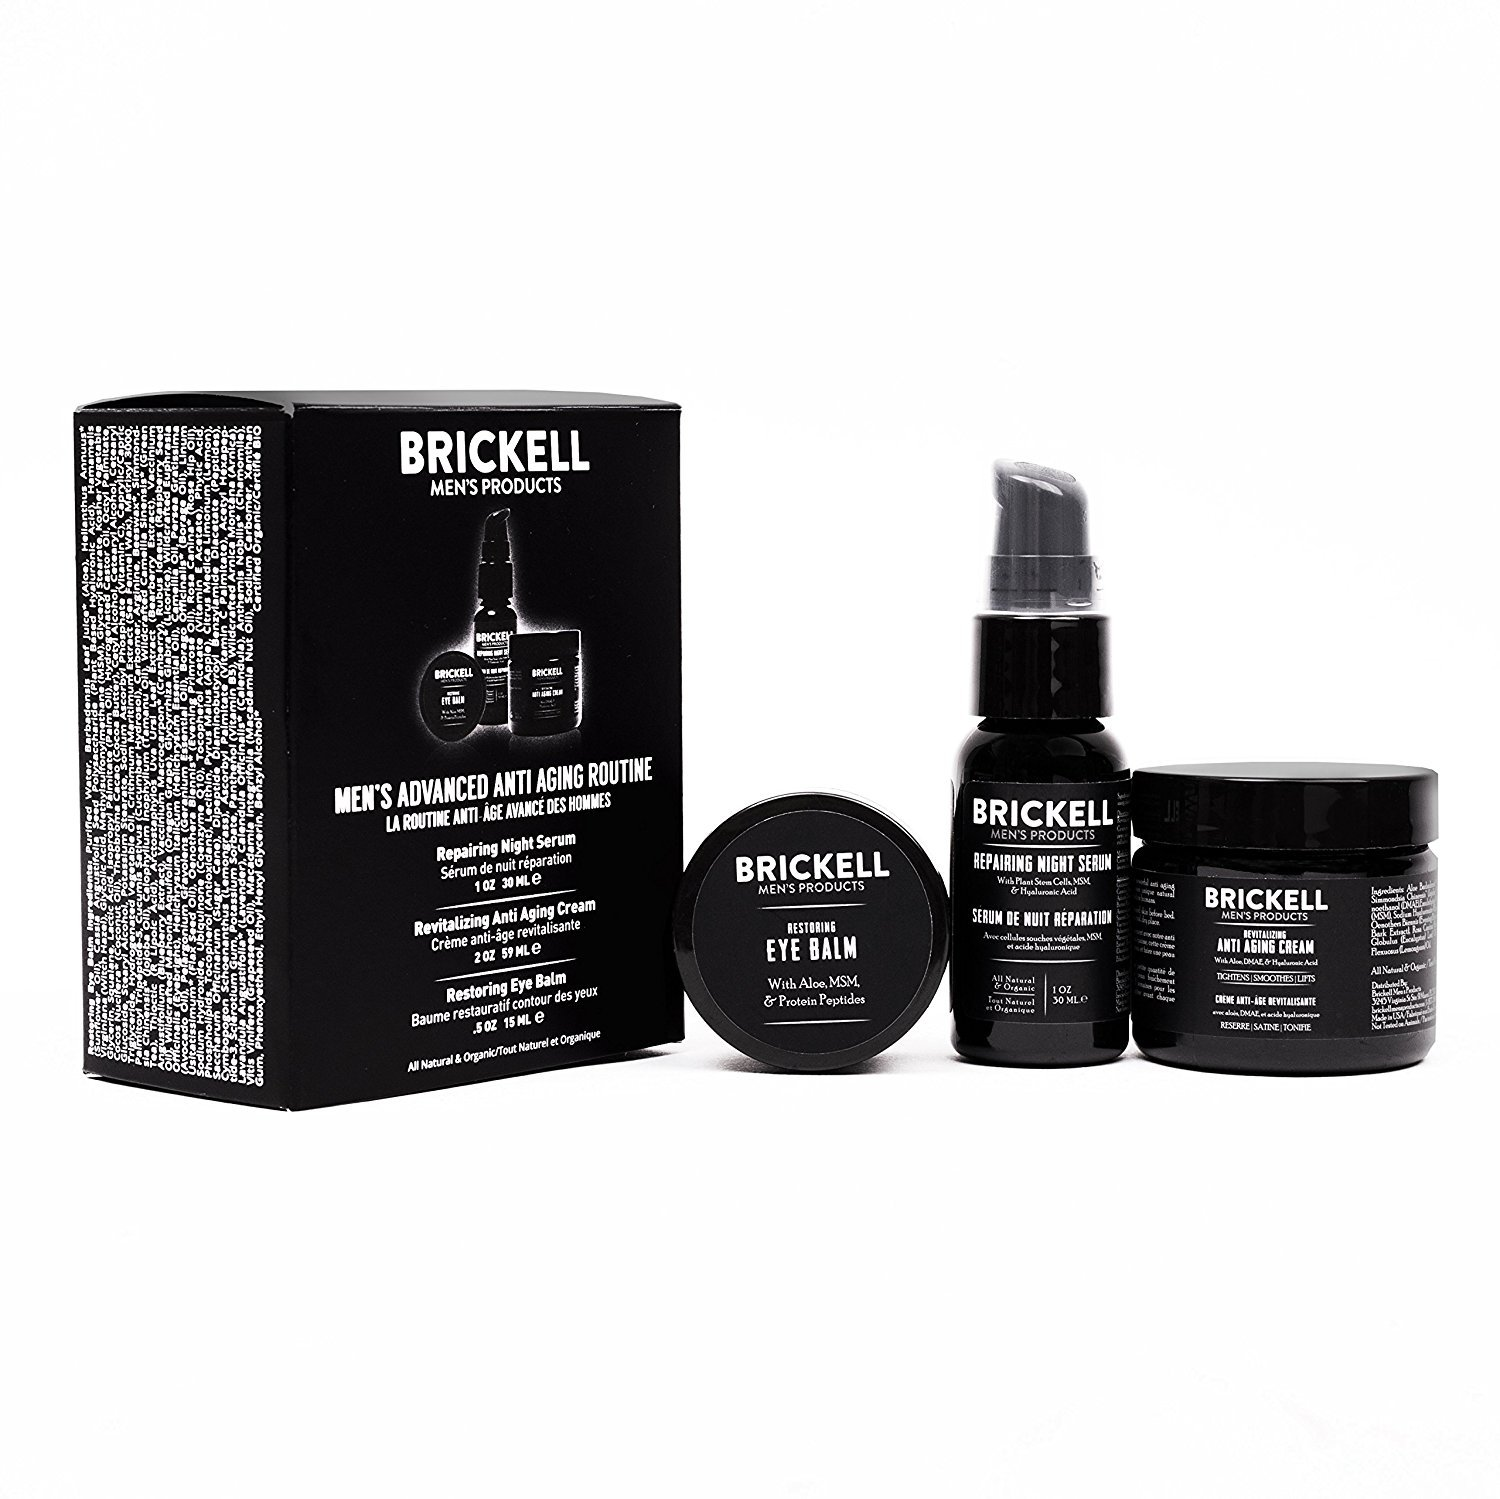 Brickell Men's Advanced Anti-Aging Routine, Night Face Cream, Vitamin C Facial Serum and Eye Cream, Natural and Organic, Scented: Beauty